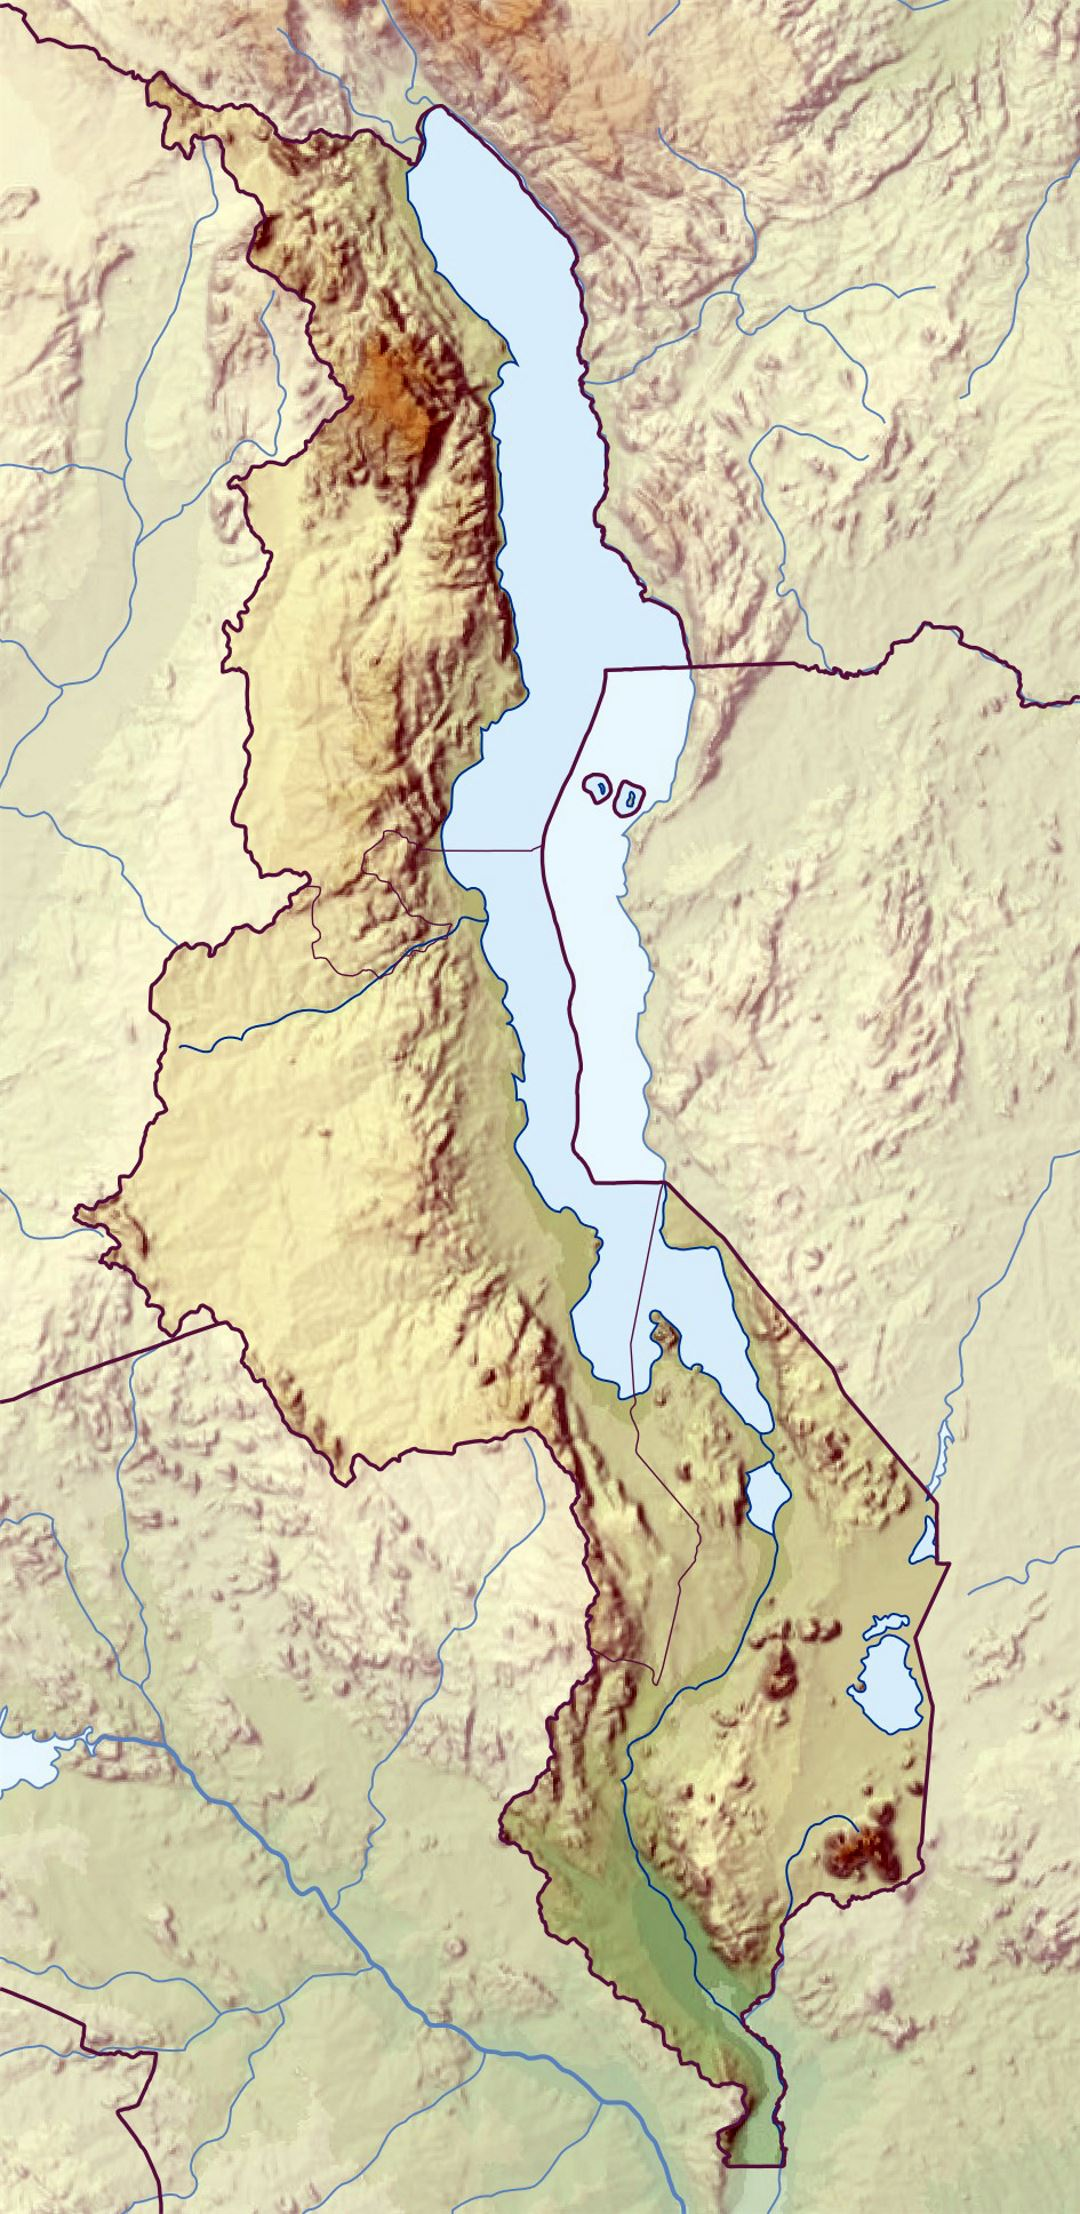 Large relief map of Malawi